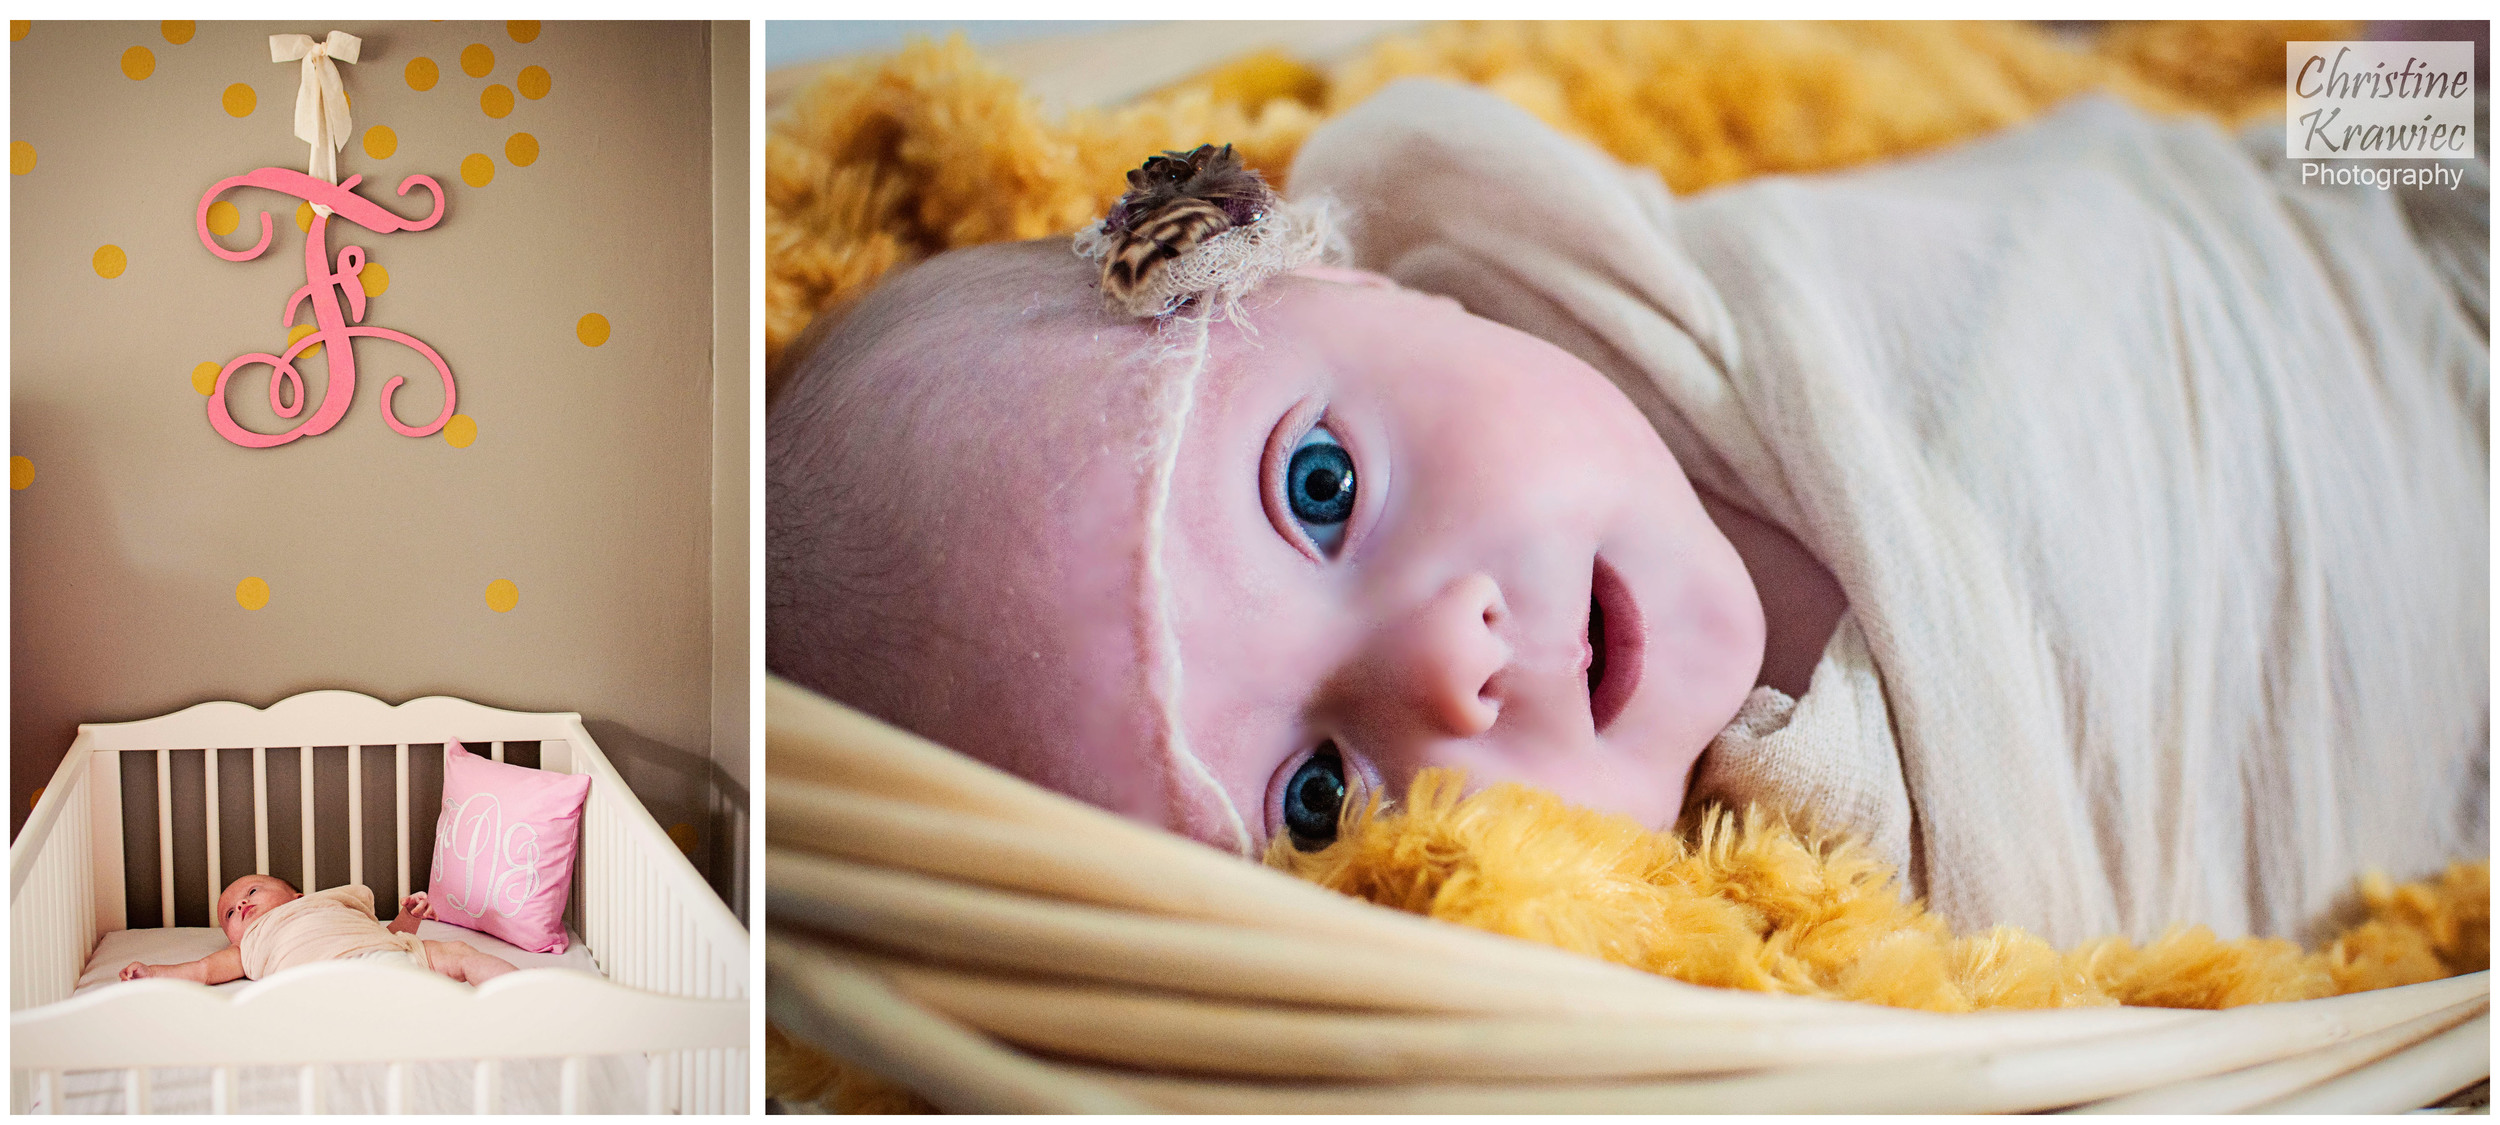 Christine Krawiec Photography - South Jersey Newborn Photographer